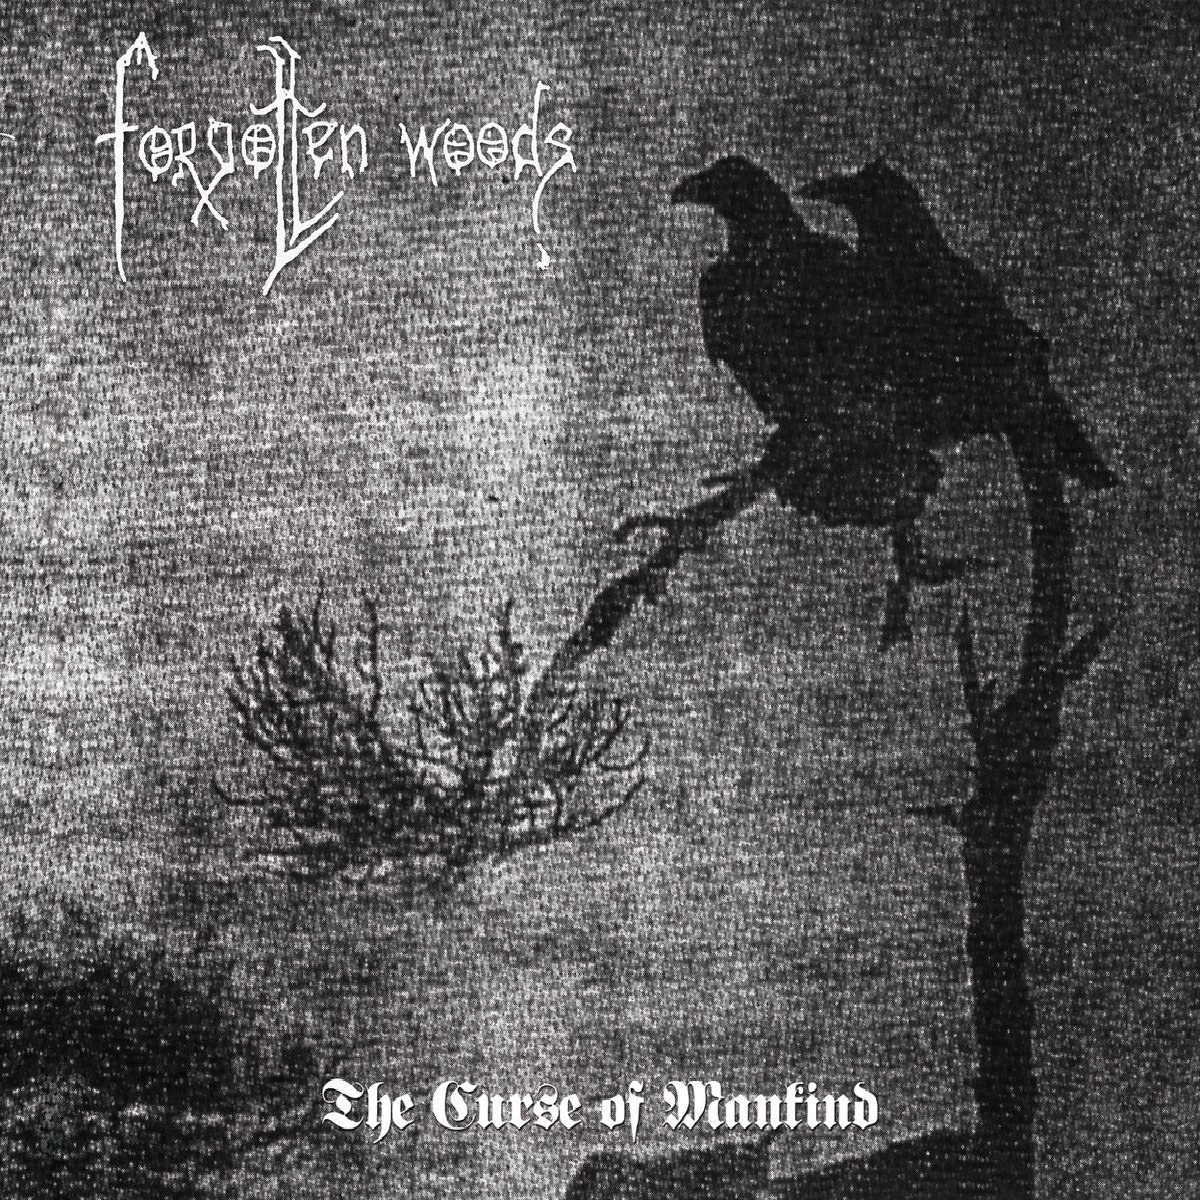 Review for Forgotten Woods - The Curse of Mankind